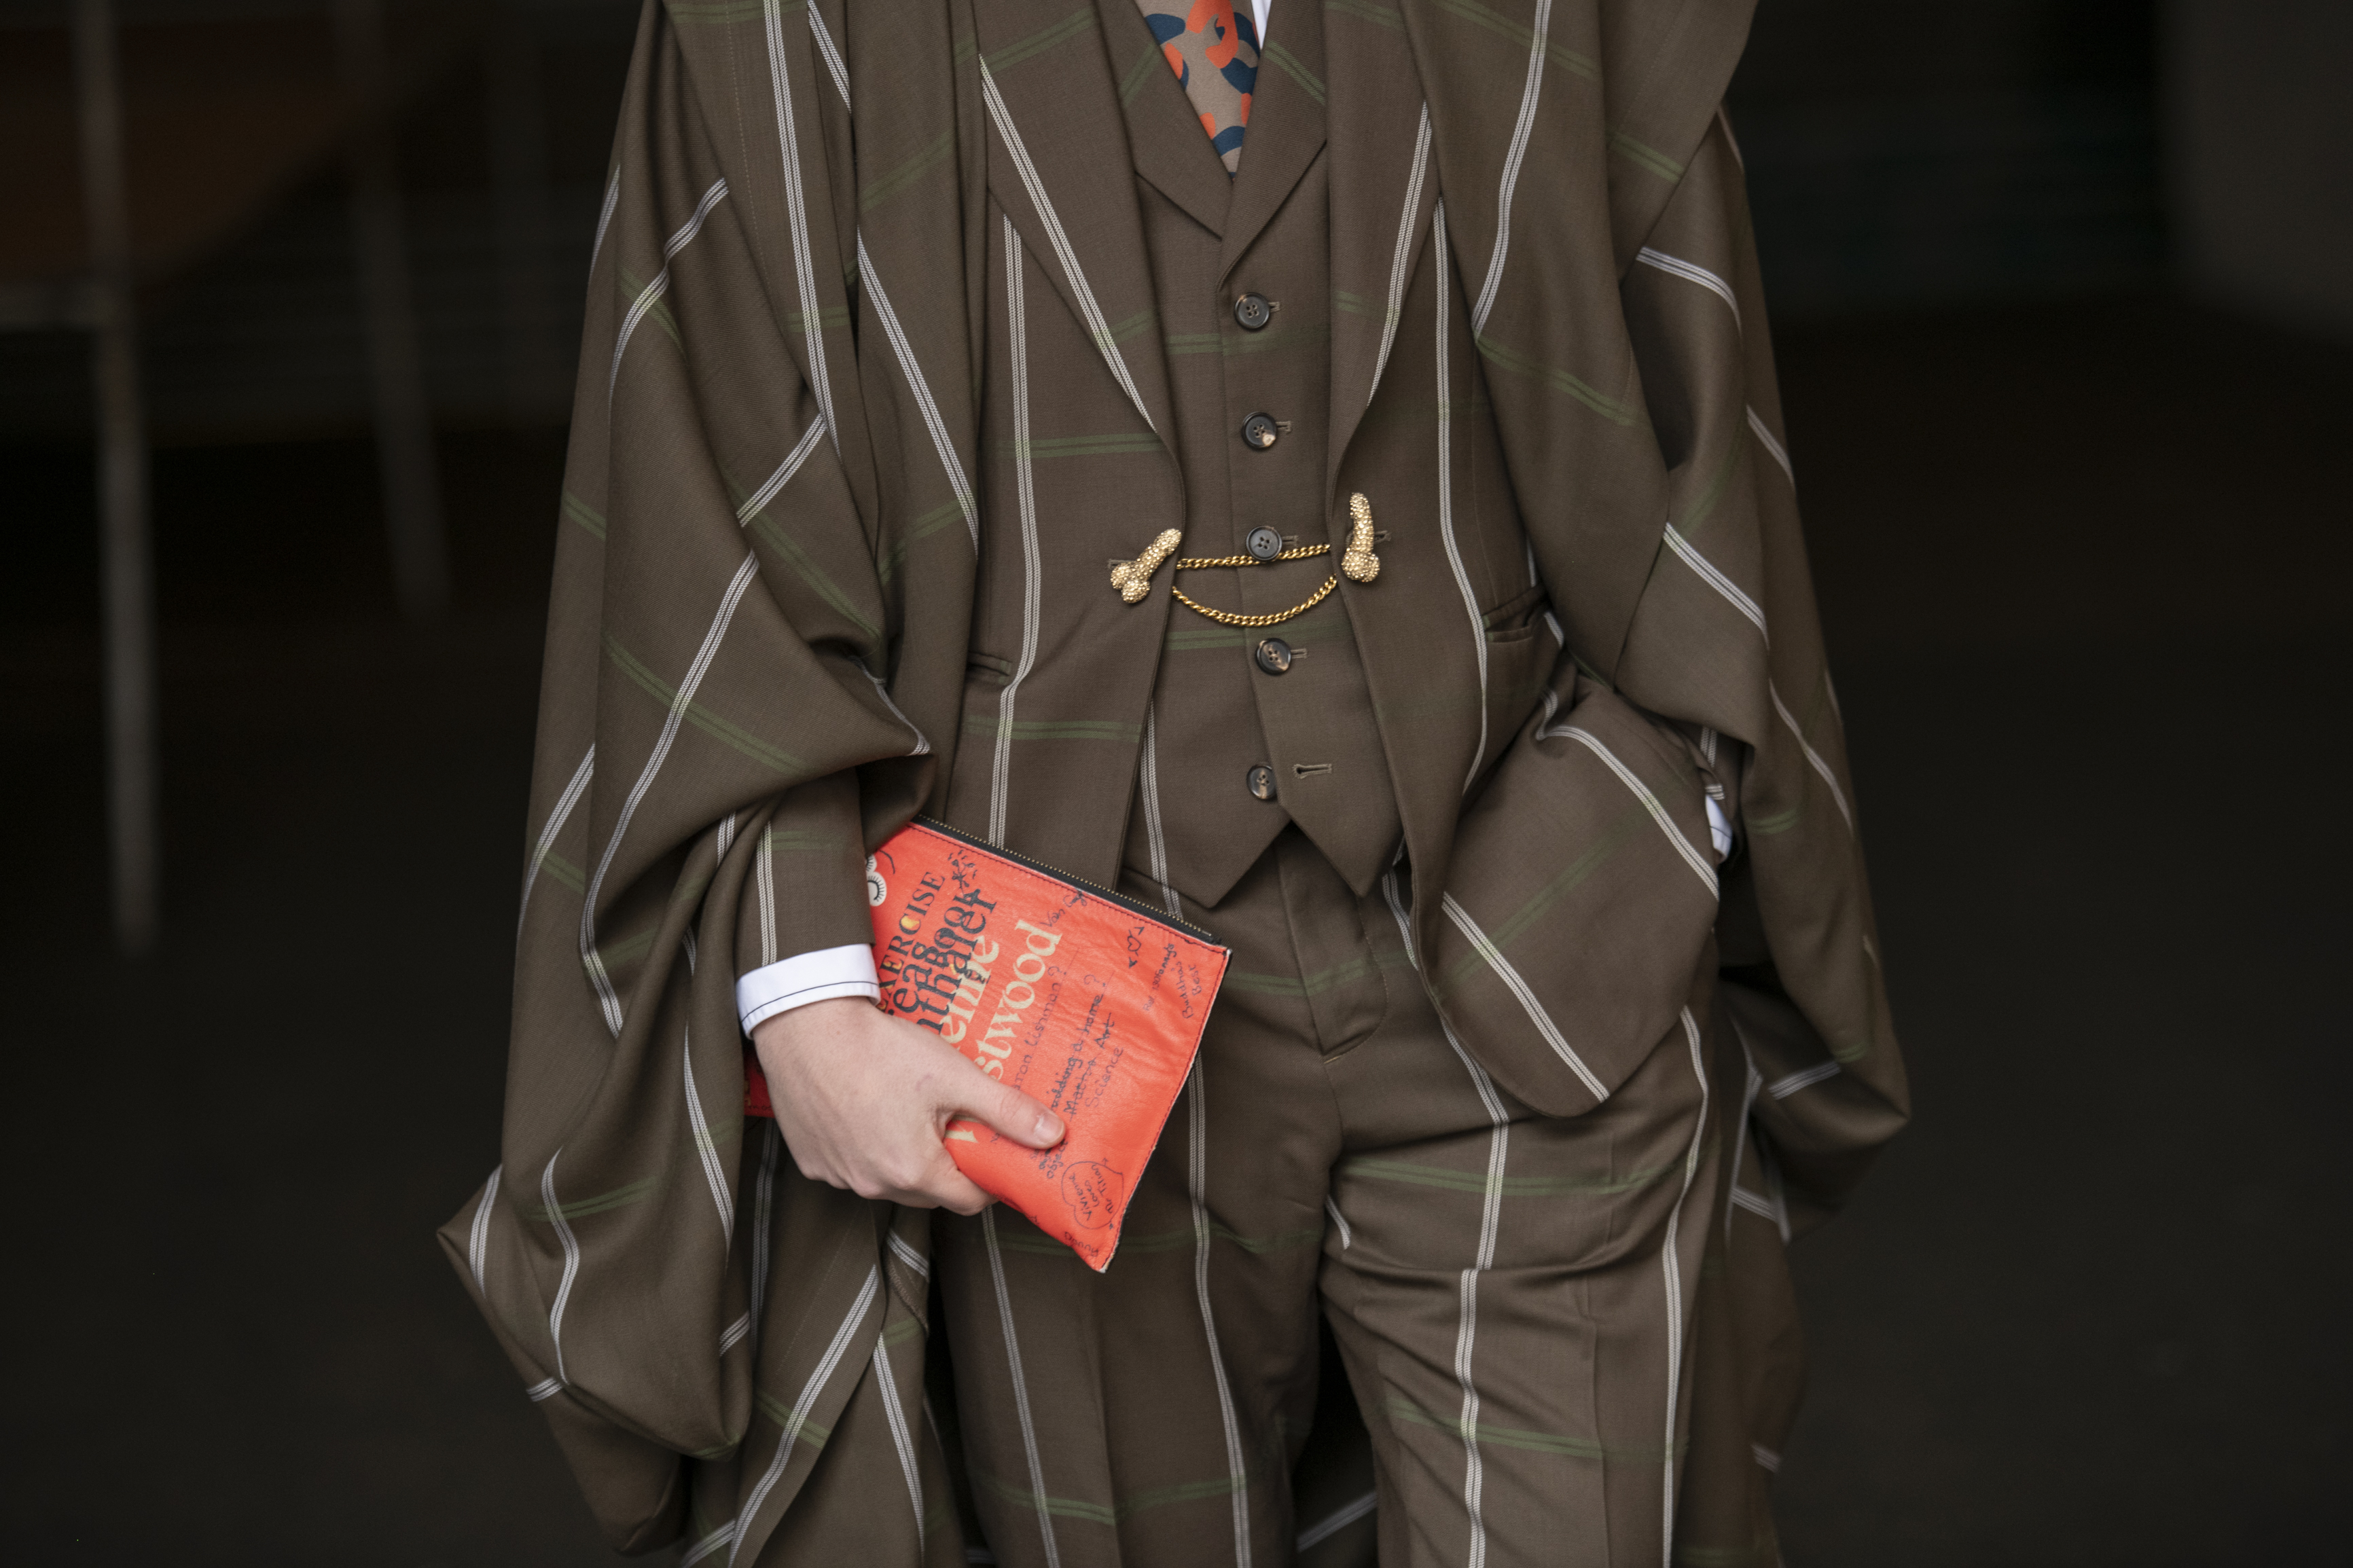 London Fashion Week Men S Autumn Winter 19 Day 1 Ootd The Norm Can Conform